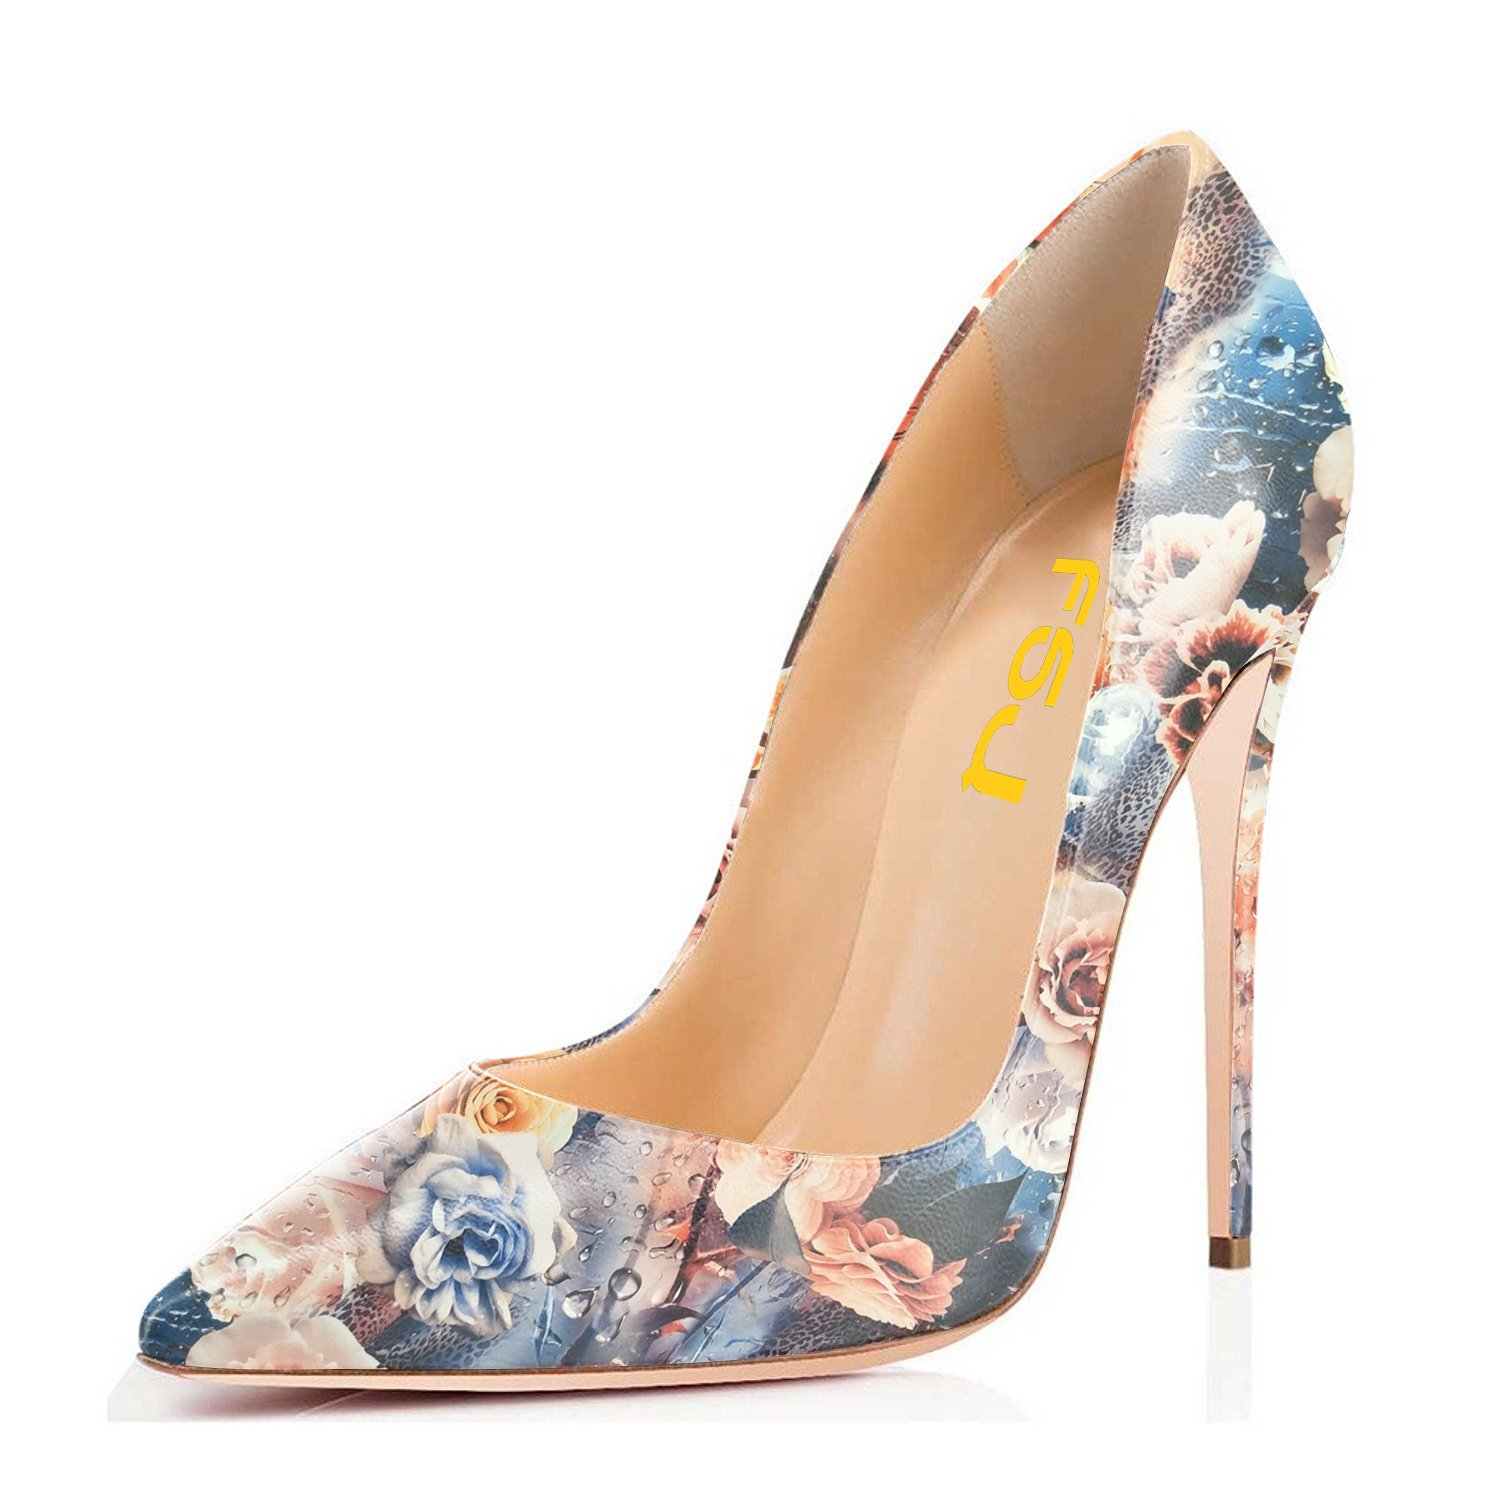 FSJ Women Fashion High Heel Stilettos Pointed Toe Pumps Evening Dress Printed Shoes Size 4-15 US B07DR9NG74 4 B(M) US|Floral Print